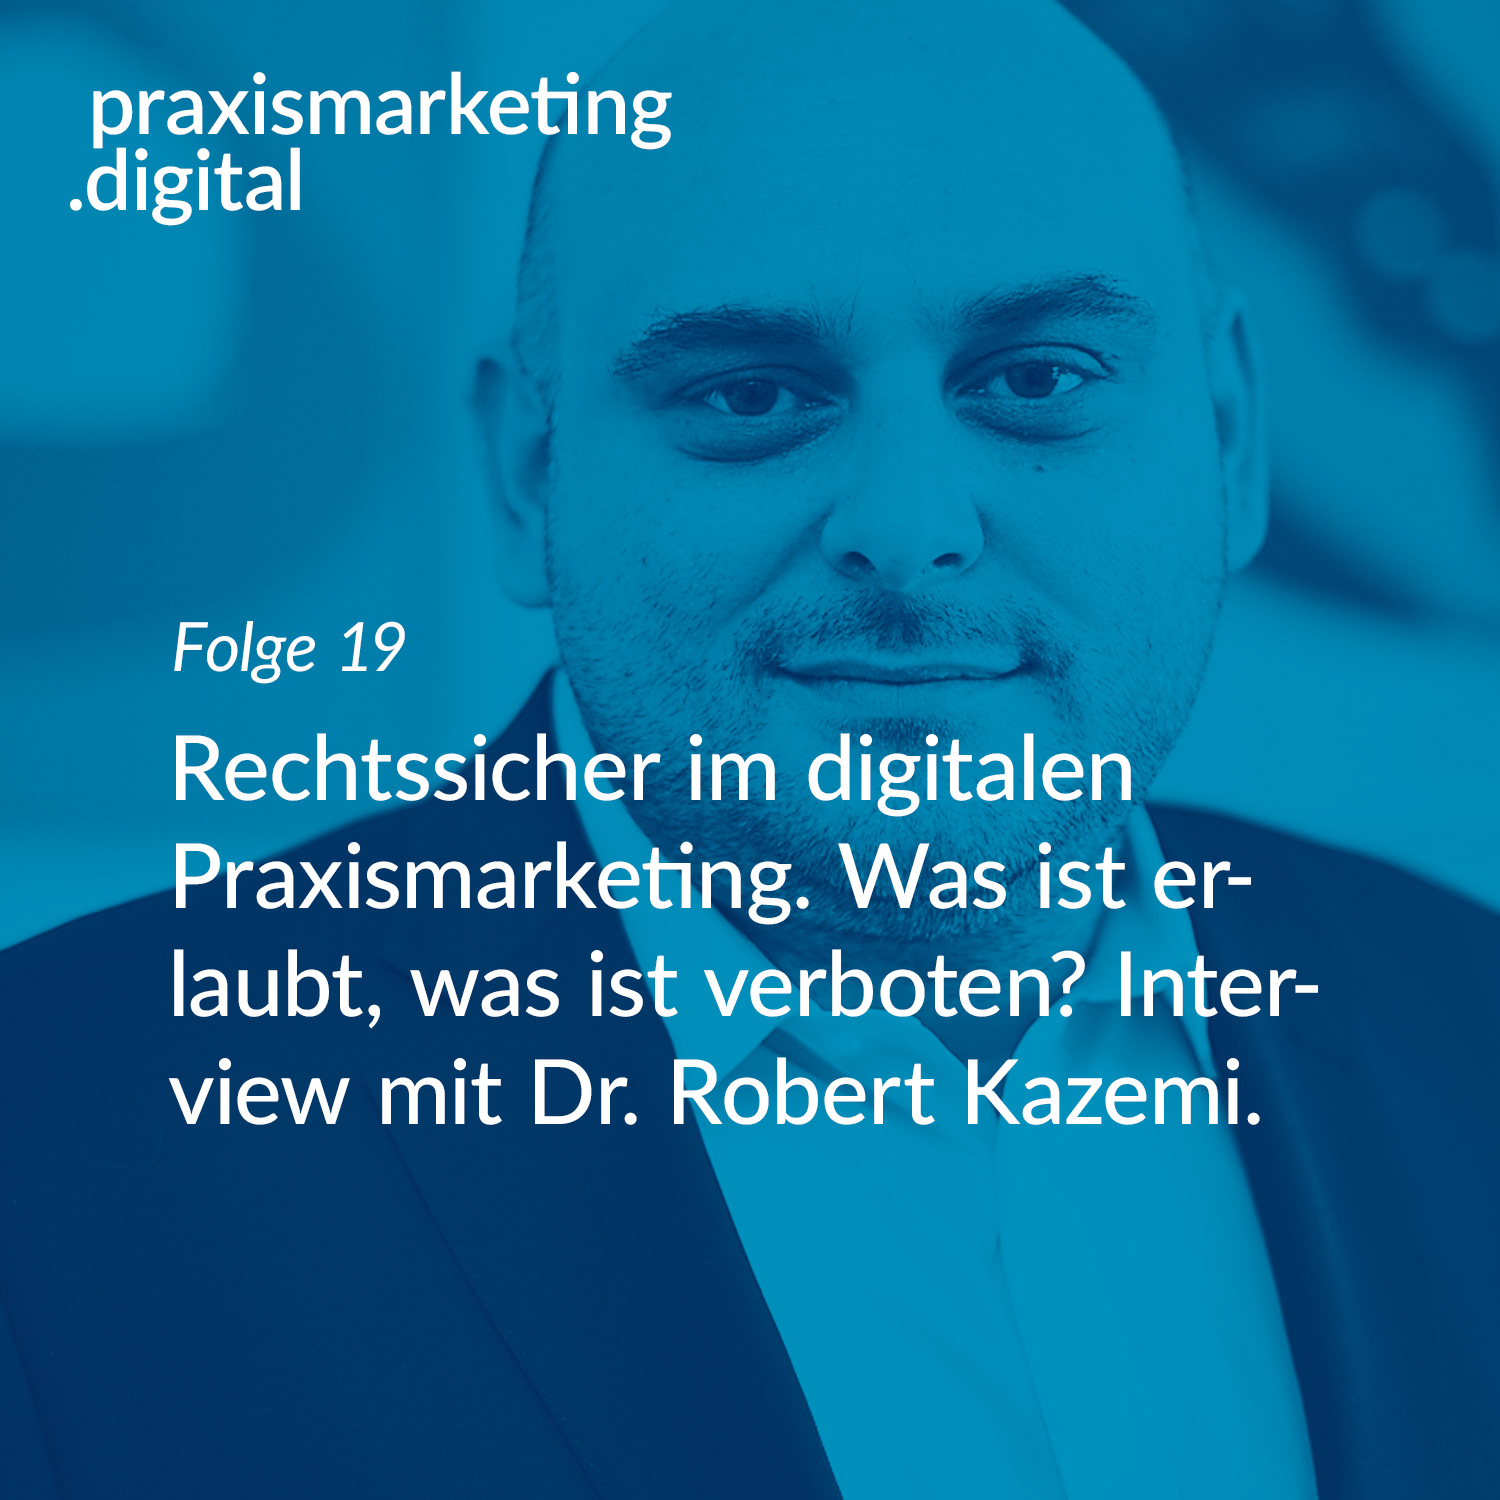 Dr Robert Kazemi - Praxismarketing Recht